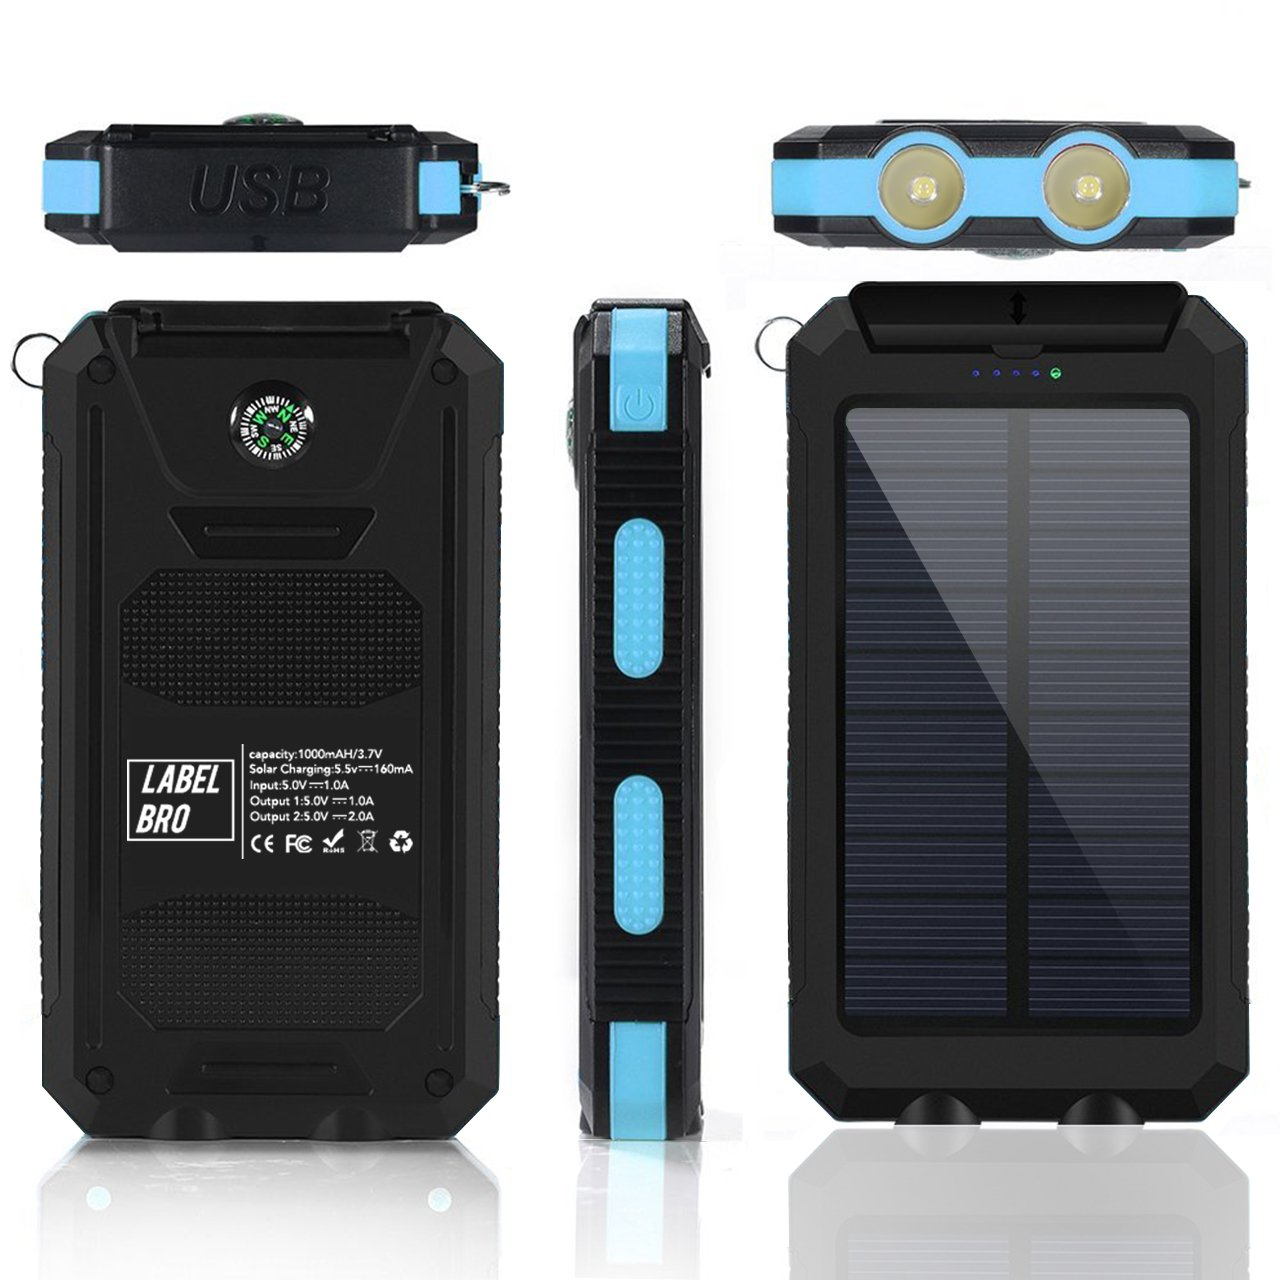 Solar Portable Charger, LabelBro Solar Battery 10000mAh Battery, Waterproof, Solar Charge, Dual LED Headlamp, Portable Compass, Outdoor Travel Solar Mobile Power, Home, Emergency (blue) by LabelBro (Image #2)